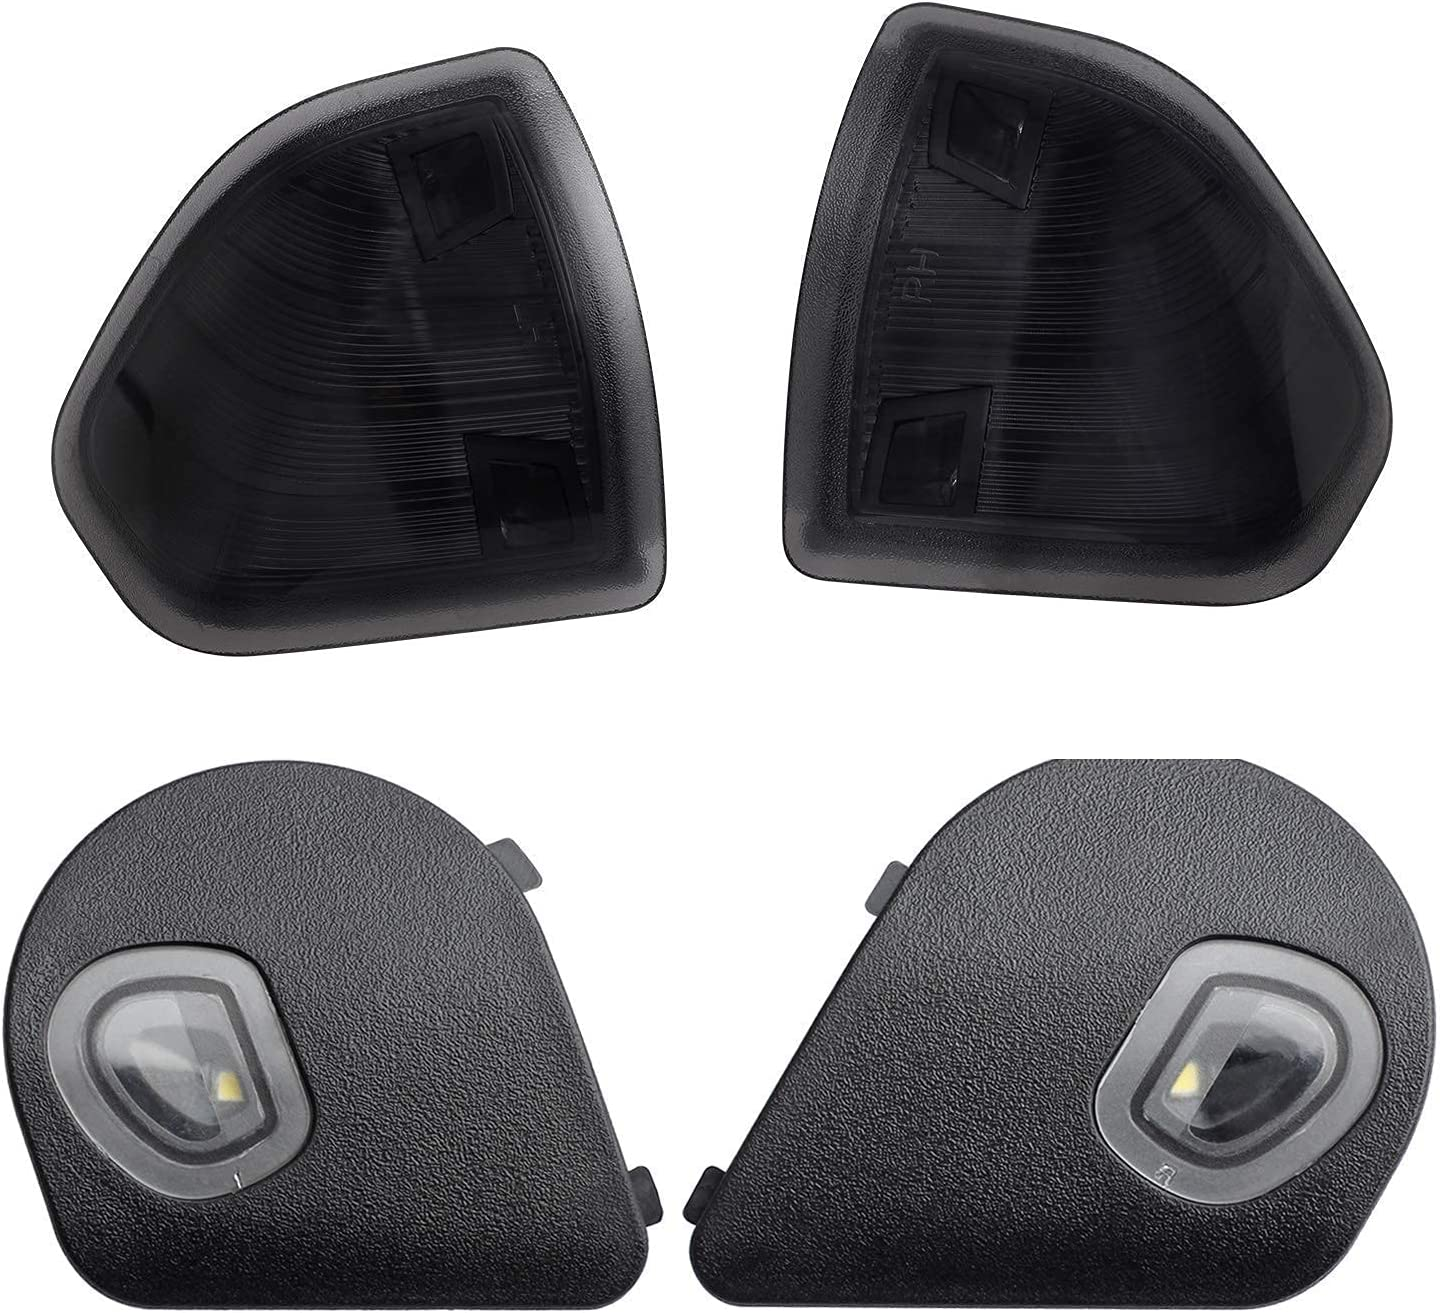 HEROO LED Turn Signal Side Smoked Light Lens Mirror Popular product Deluxe Puddle